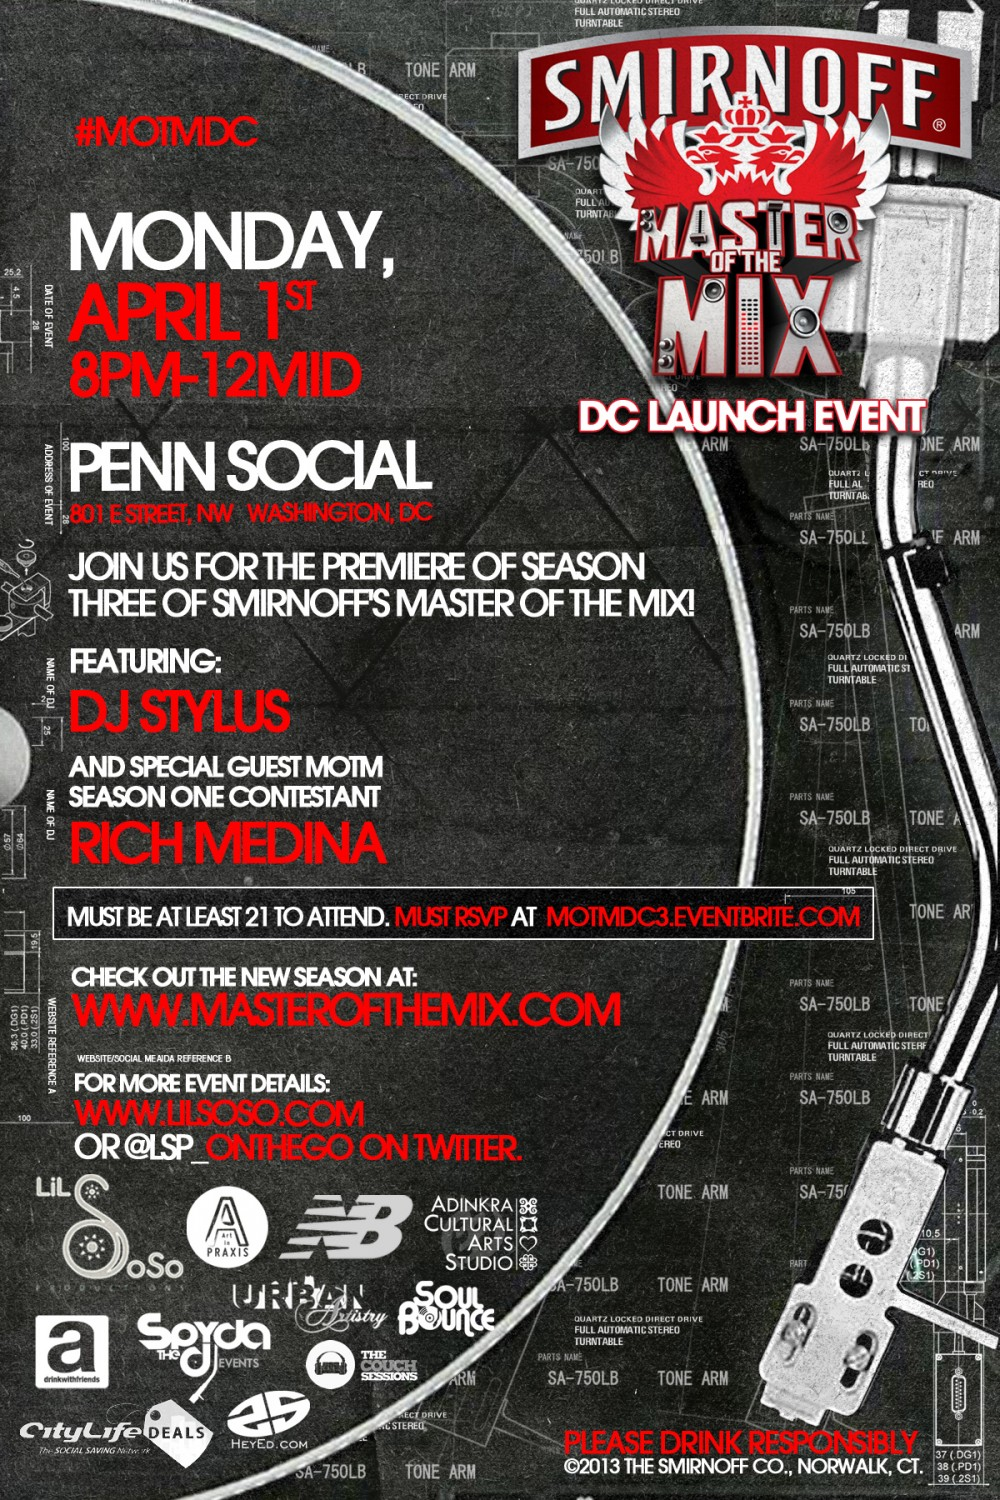 DC MoTM Season 3 launch w/ DJ Stylus & Rich Medina